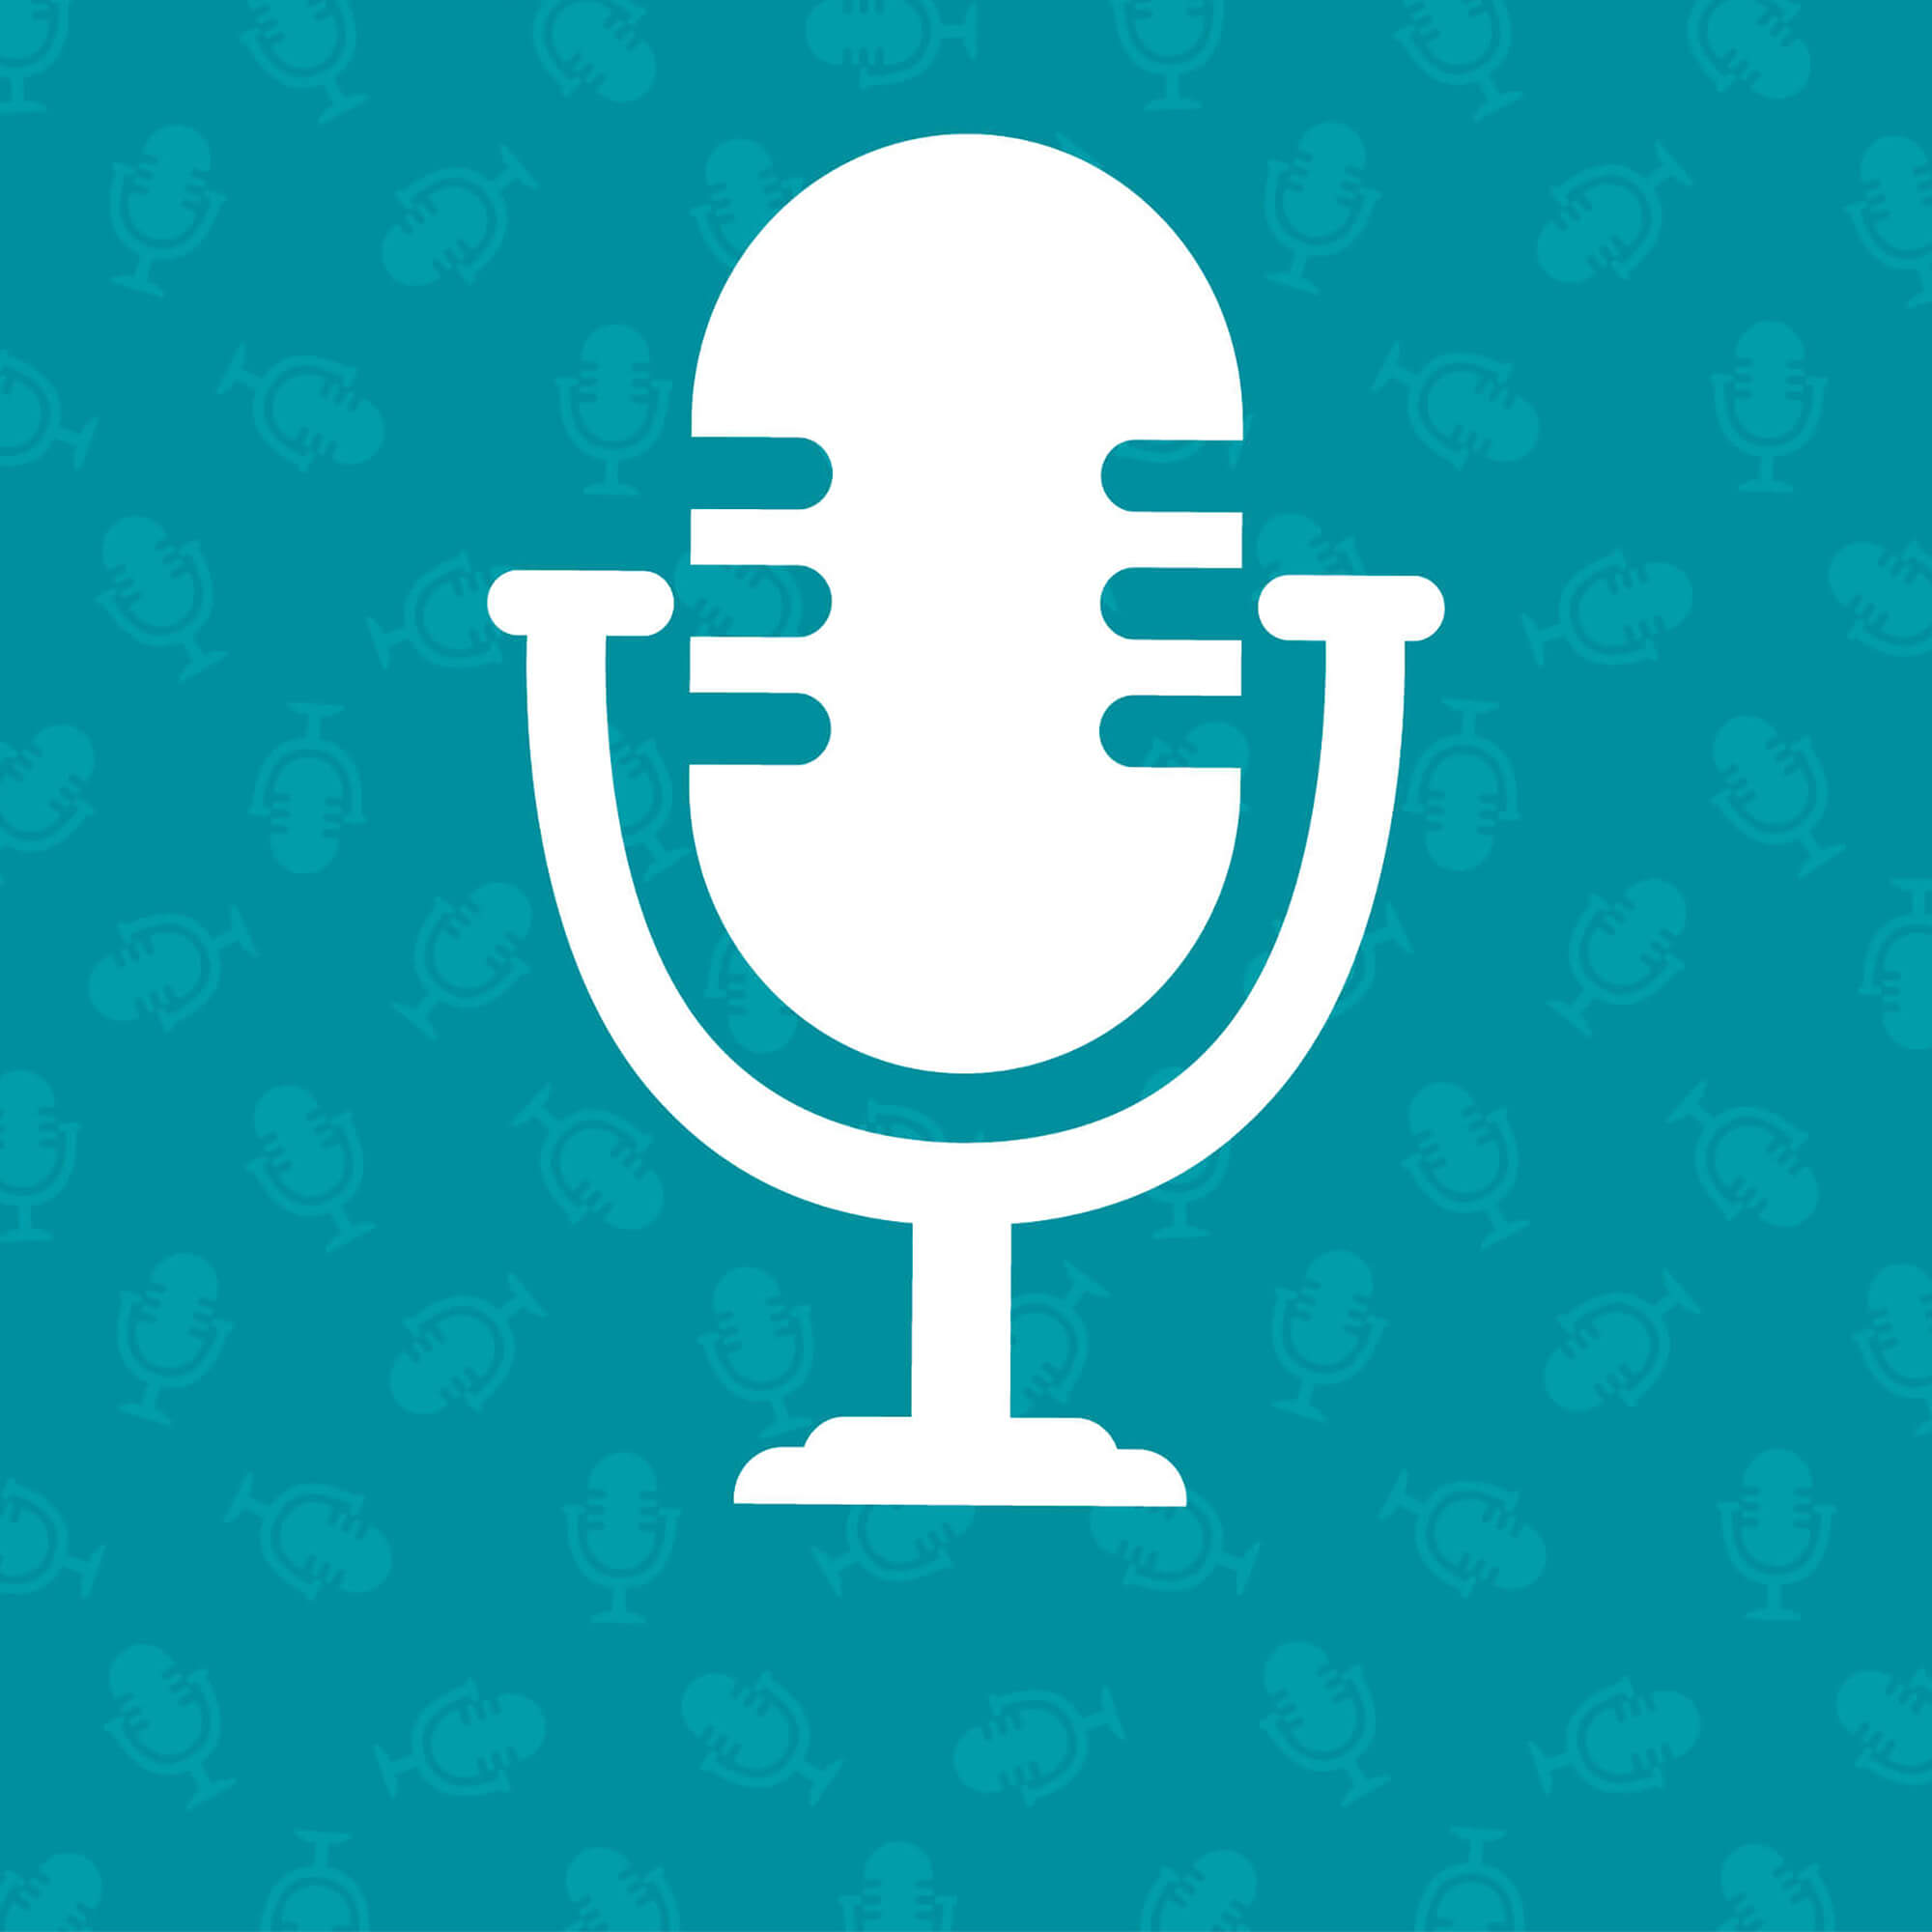 Turquoise background with tiny microphones on. White silhouette of a microphone over the top.